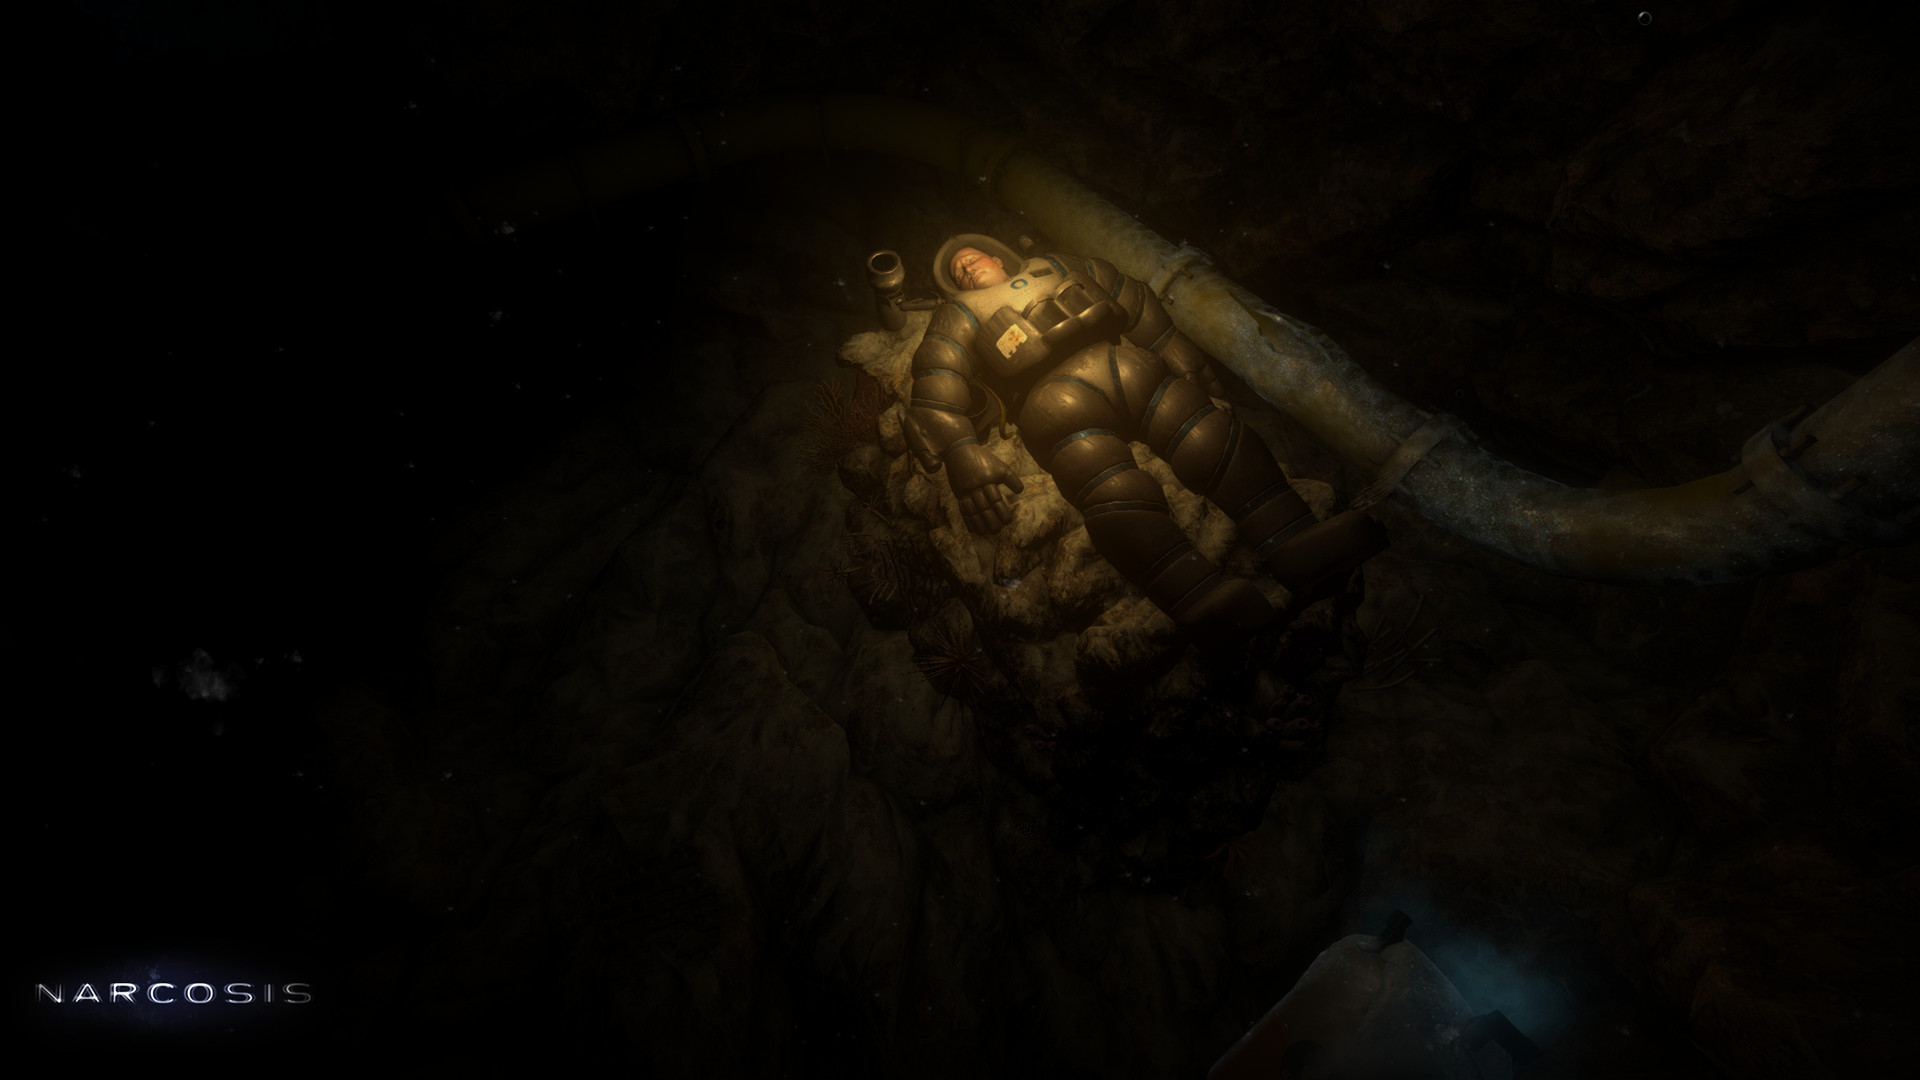 Narcosis Download For Free